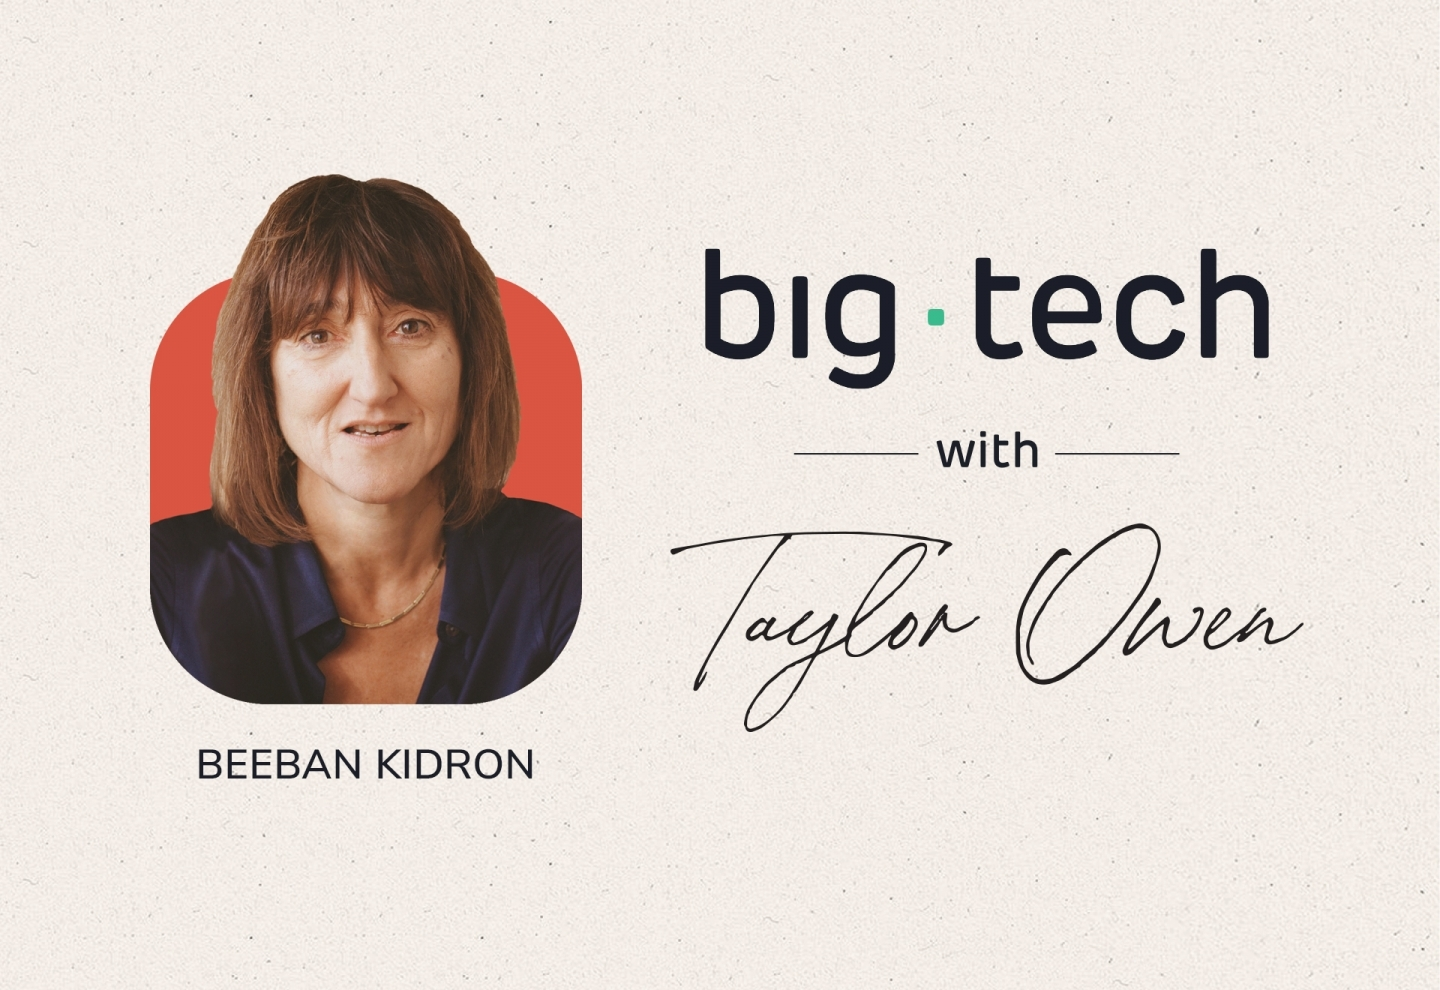 Beeban Kidron on Why Children Need a Safer Internet